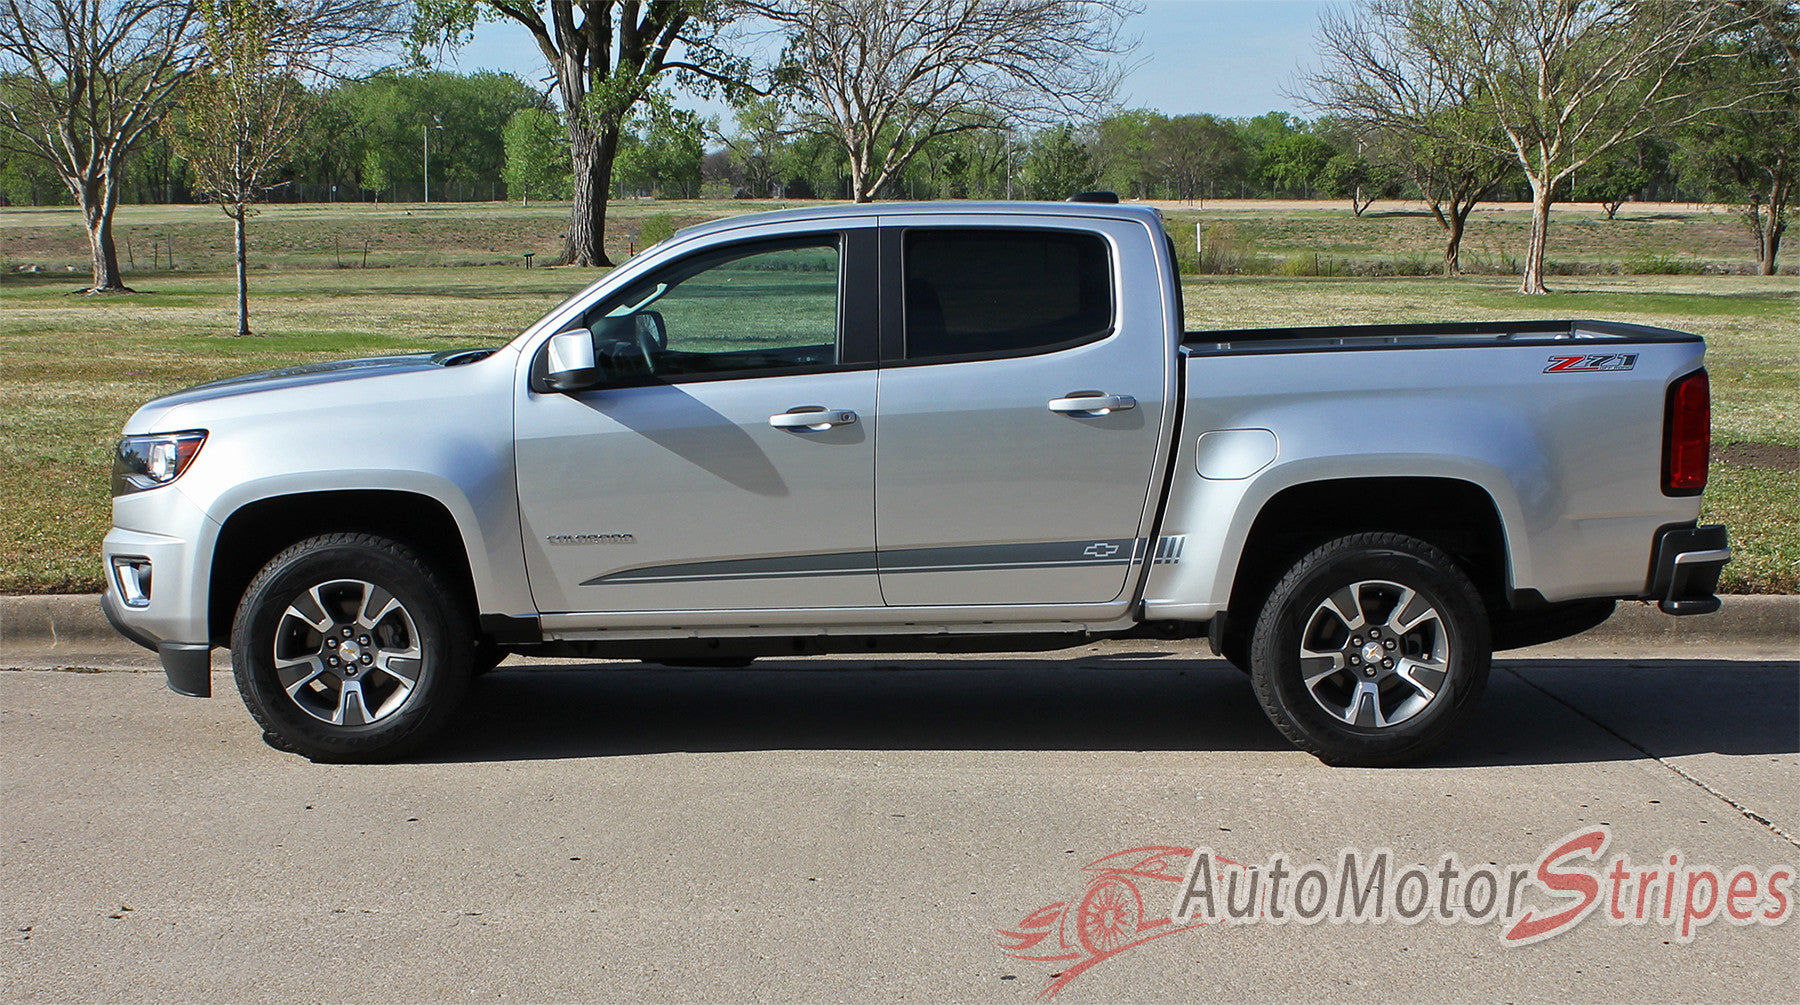 2015-2017 Chevy Colorado-GMC Canyon Extended Cab | RATON Lower Graphic Decals Stripe 2015-2017 GMC Canyon Pickup Truck